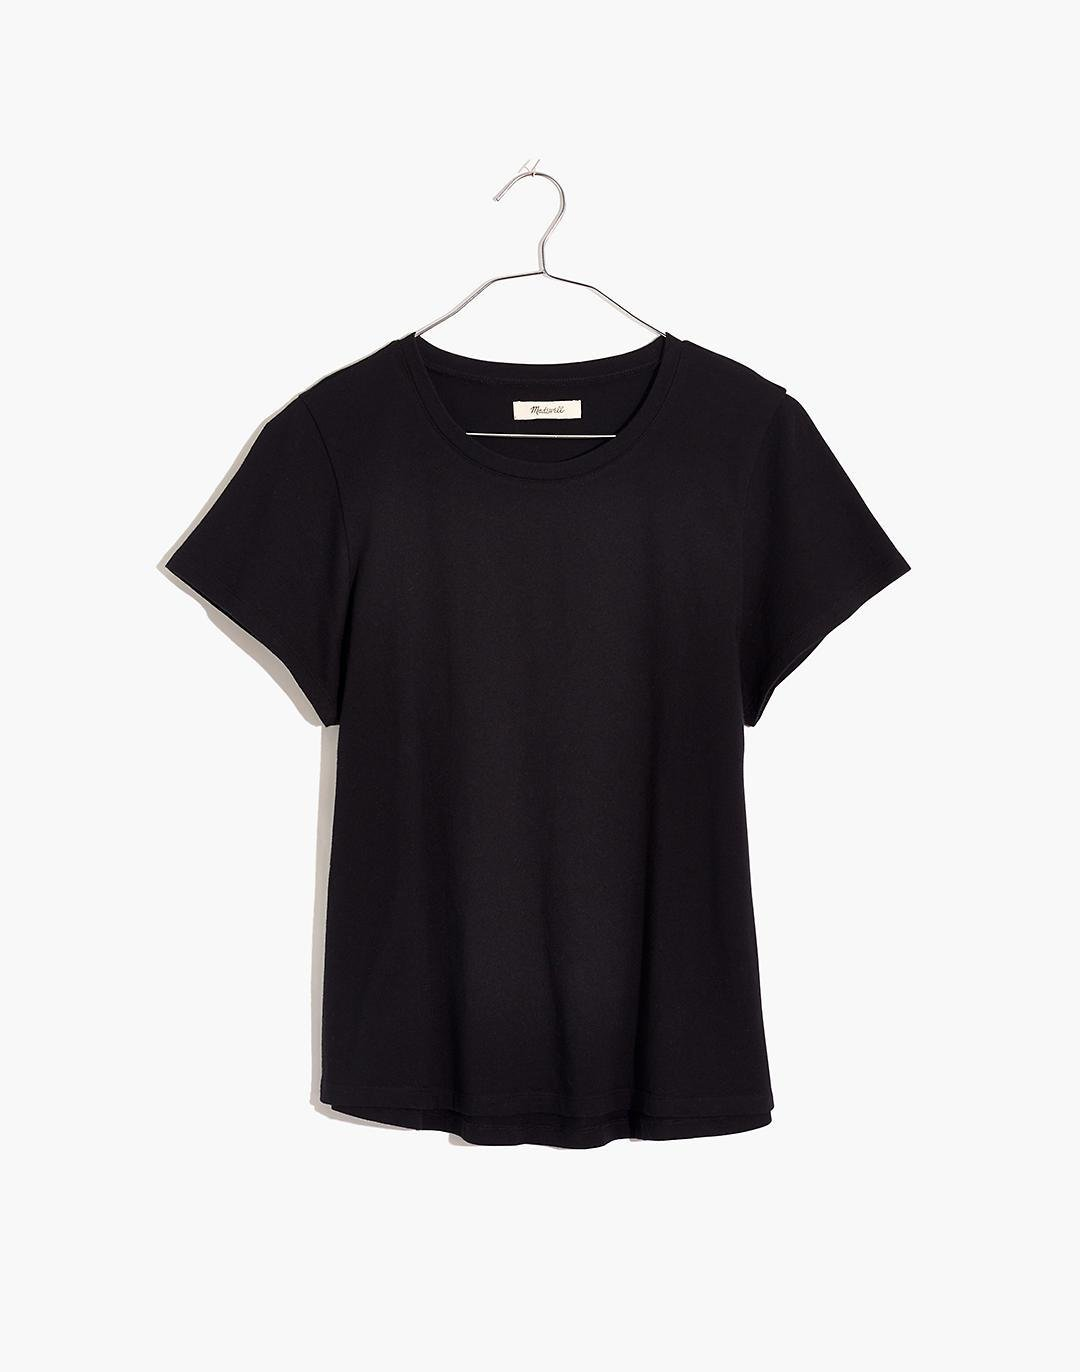 (Re)sourced Cotton Swing Crop Tee